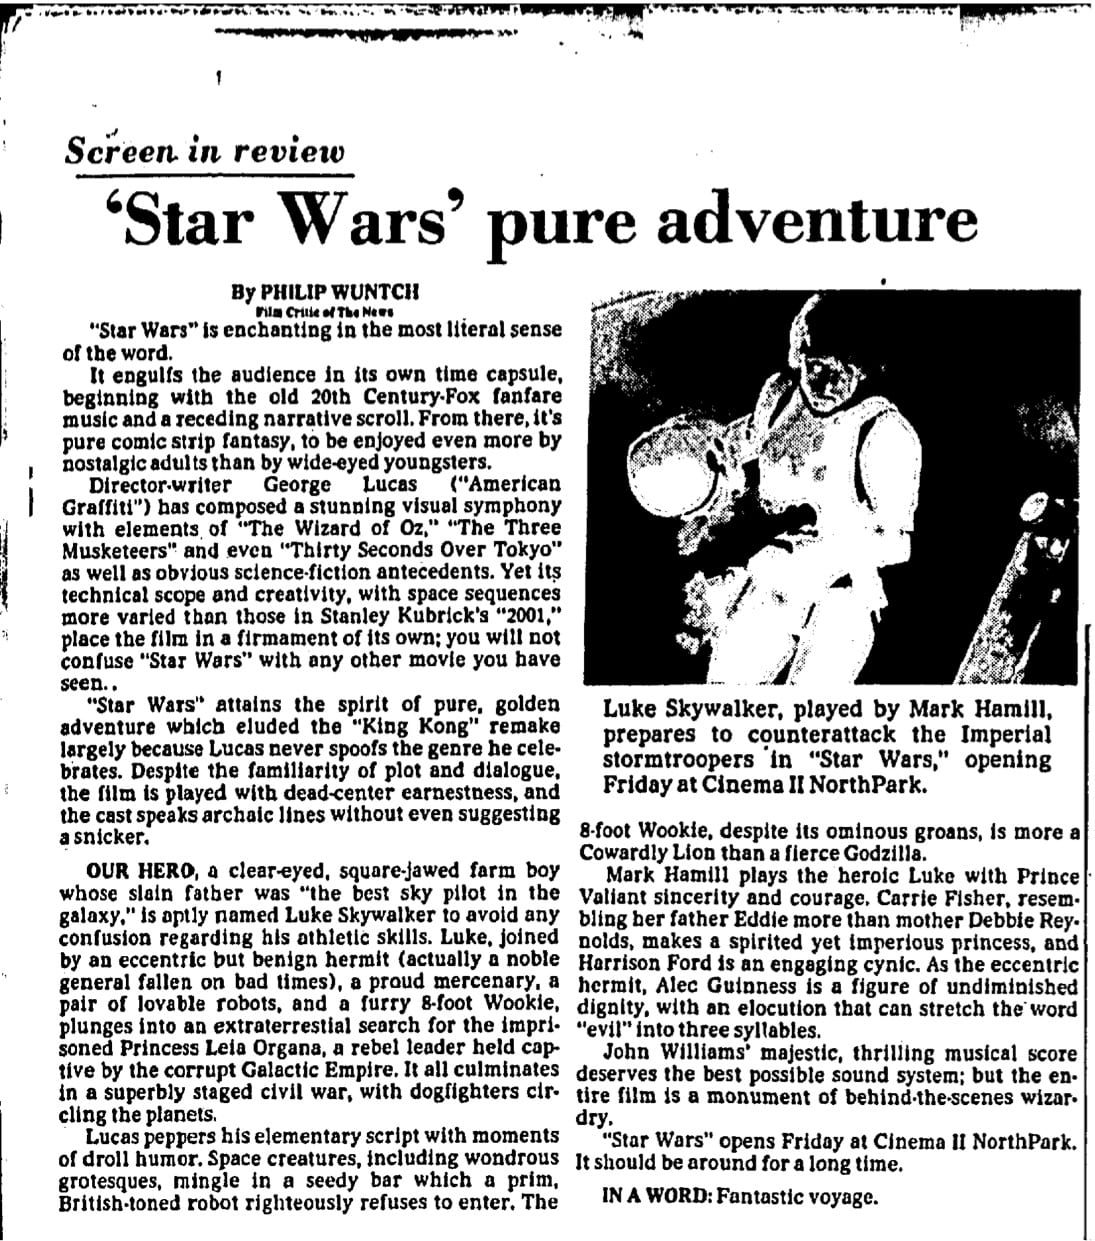 Headline: 'Star Wars' Pure Adventure by Philip Wuntch. Dallas Morning News (Dallas, Texas), May 26, 1977, p. 51. From the Dallas Morning News Historical Archive.